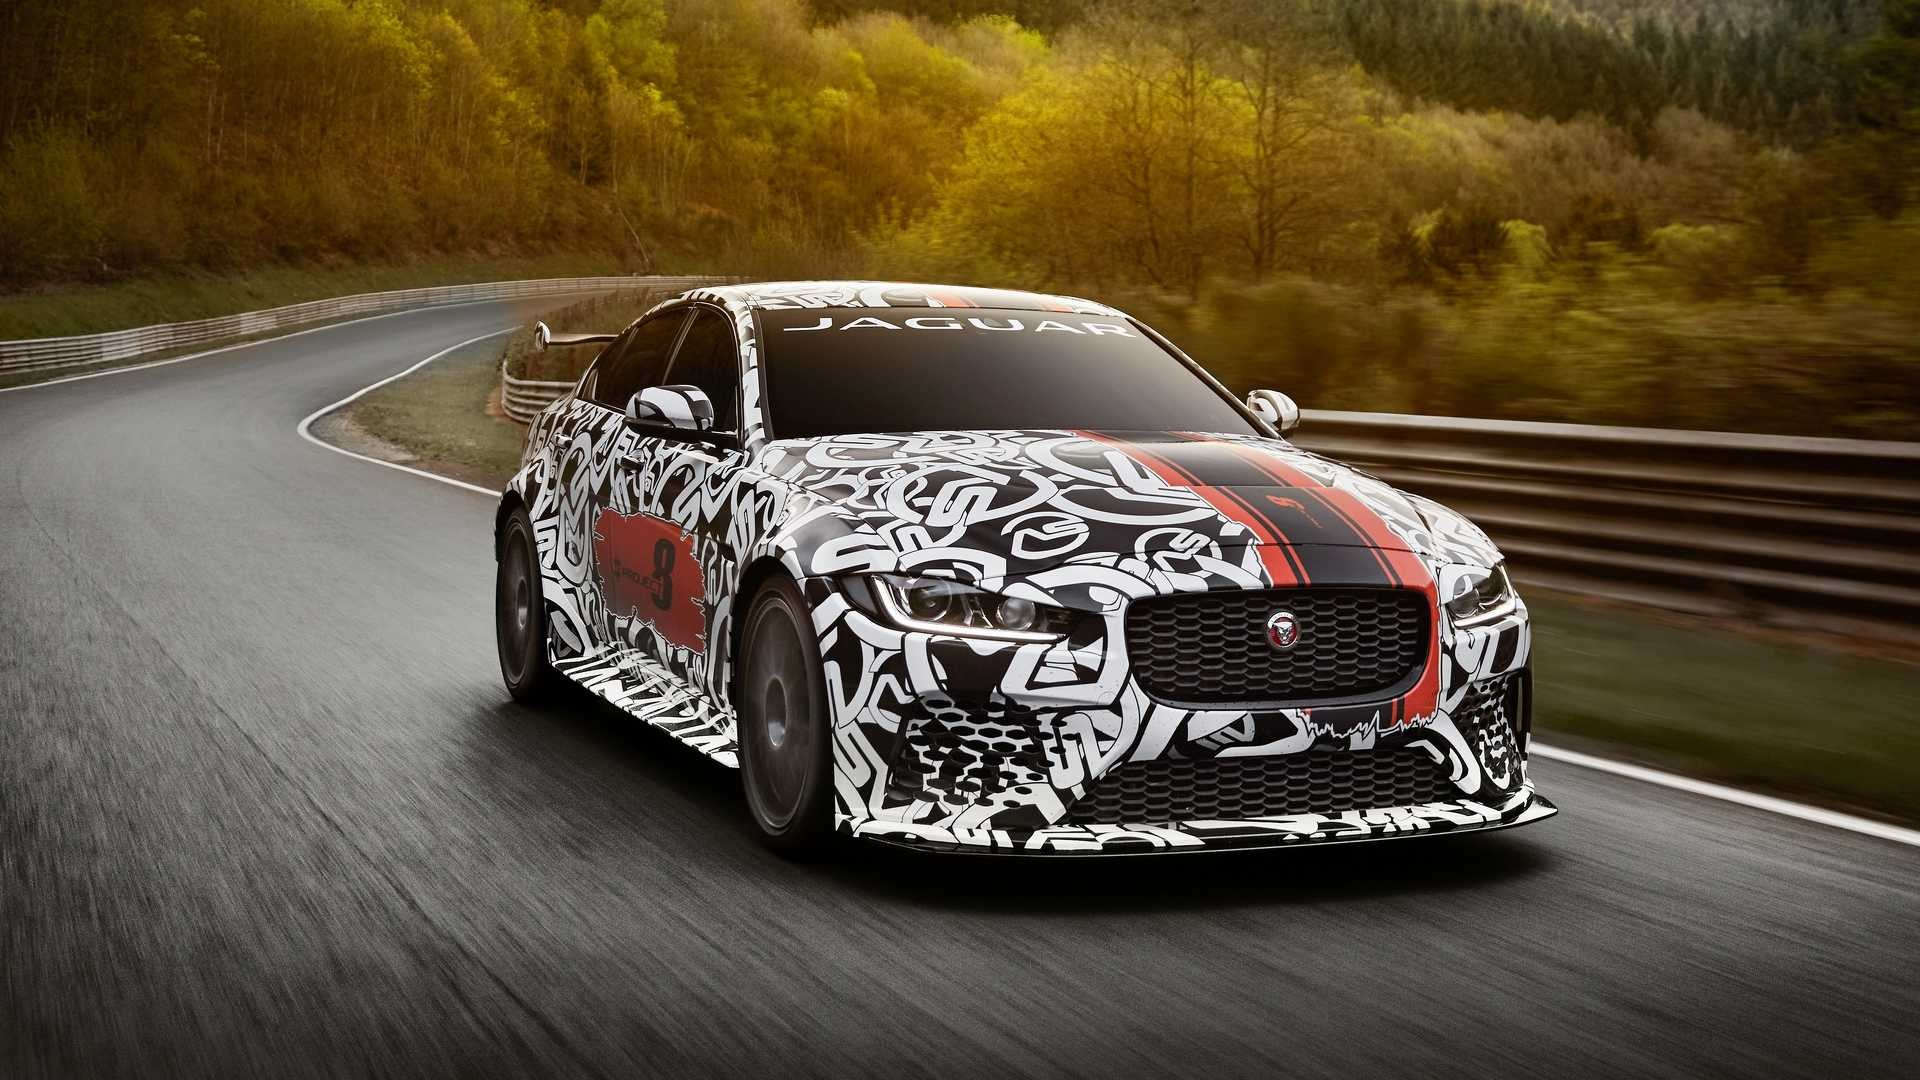 Jaguar XE SV Project 8 prototype testing Nurburgring World Copyright: Patrick Gosling / Beadyeye Ref:  XE_SV_Project8_NBR-1053.CR2